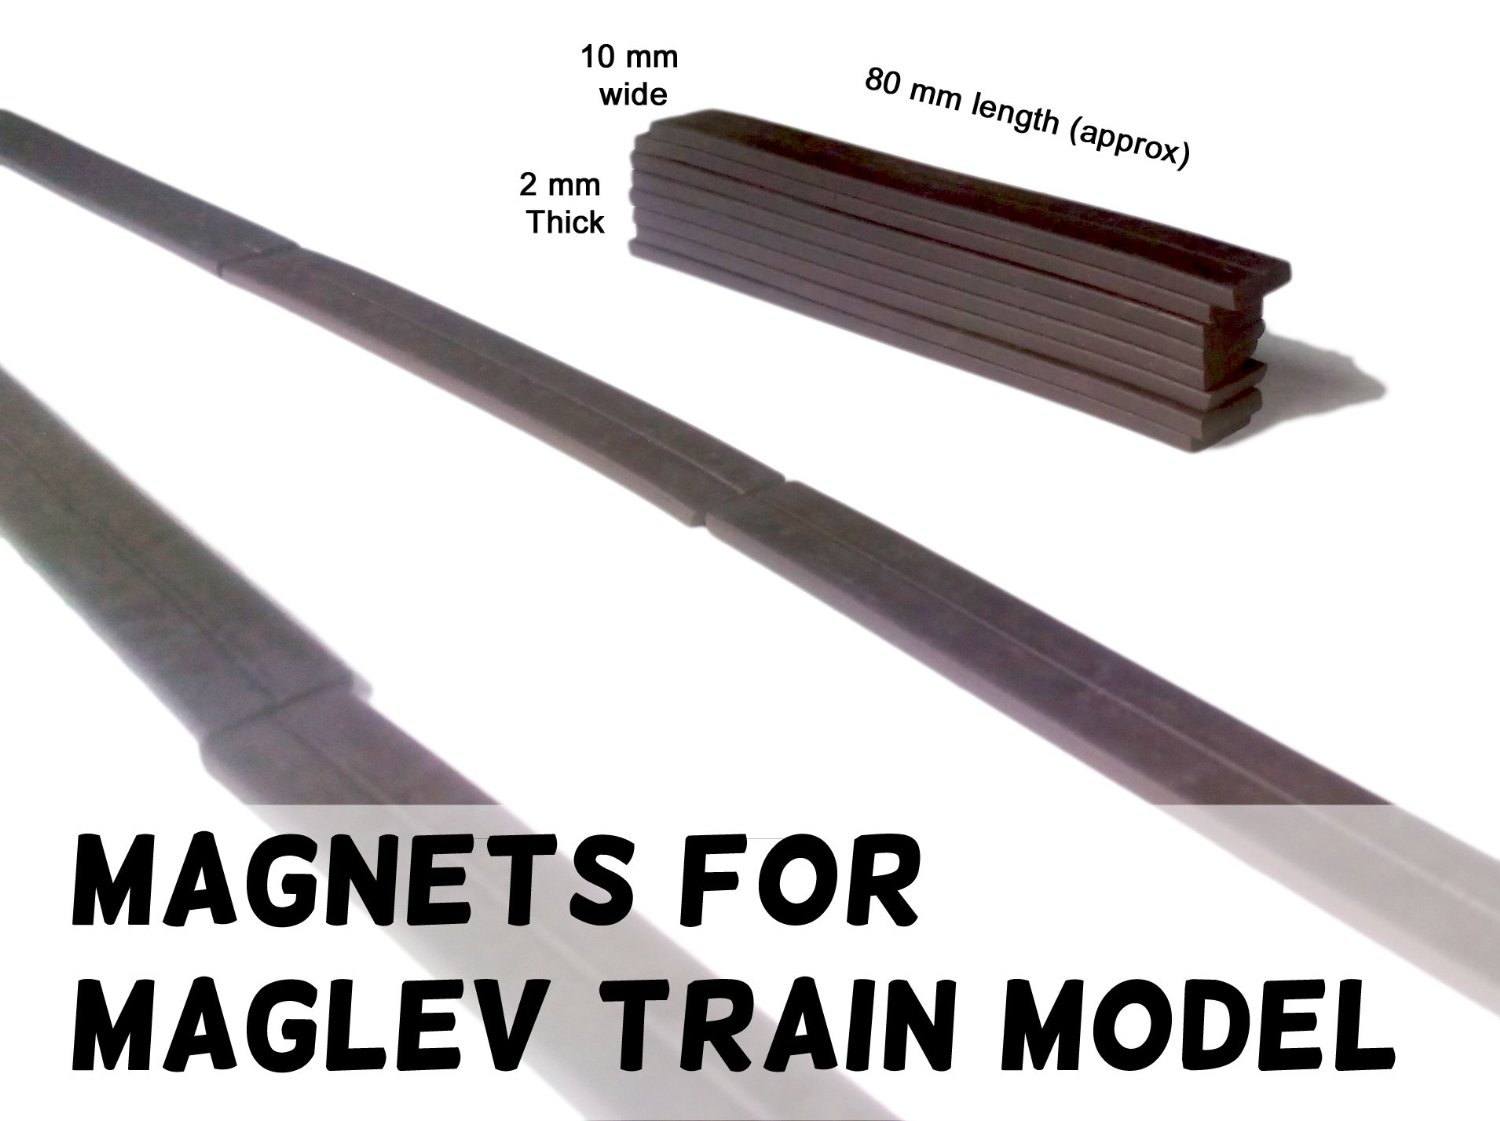 A4 Art & Craft Magnet Sheet India: Maglev Train Project - Magnets